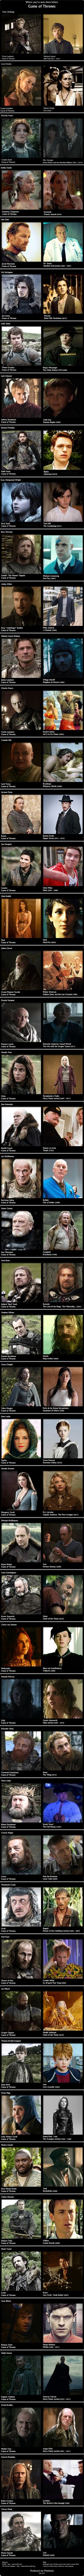 Game of Throne Characters - Where you've seen them before.